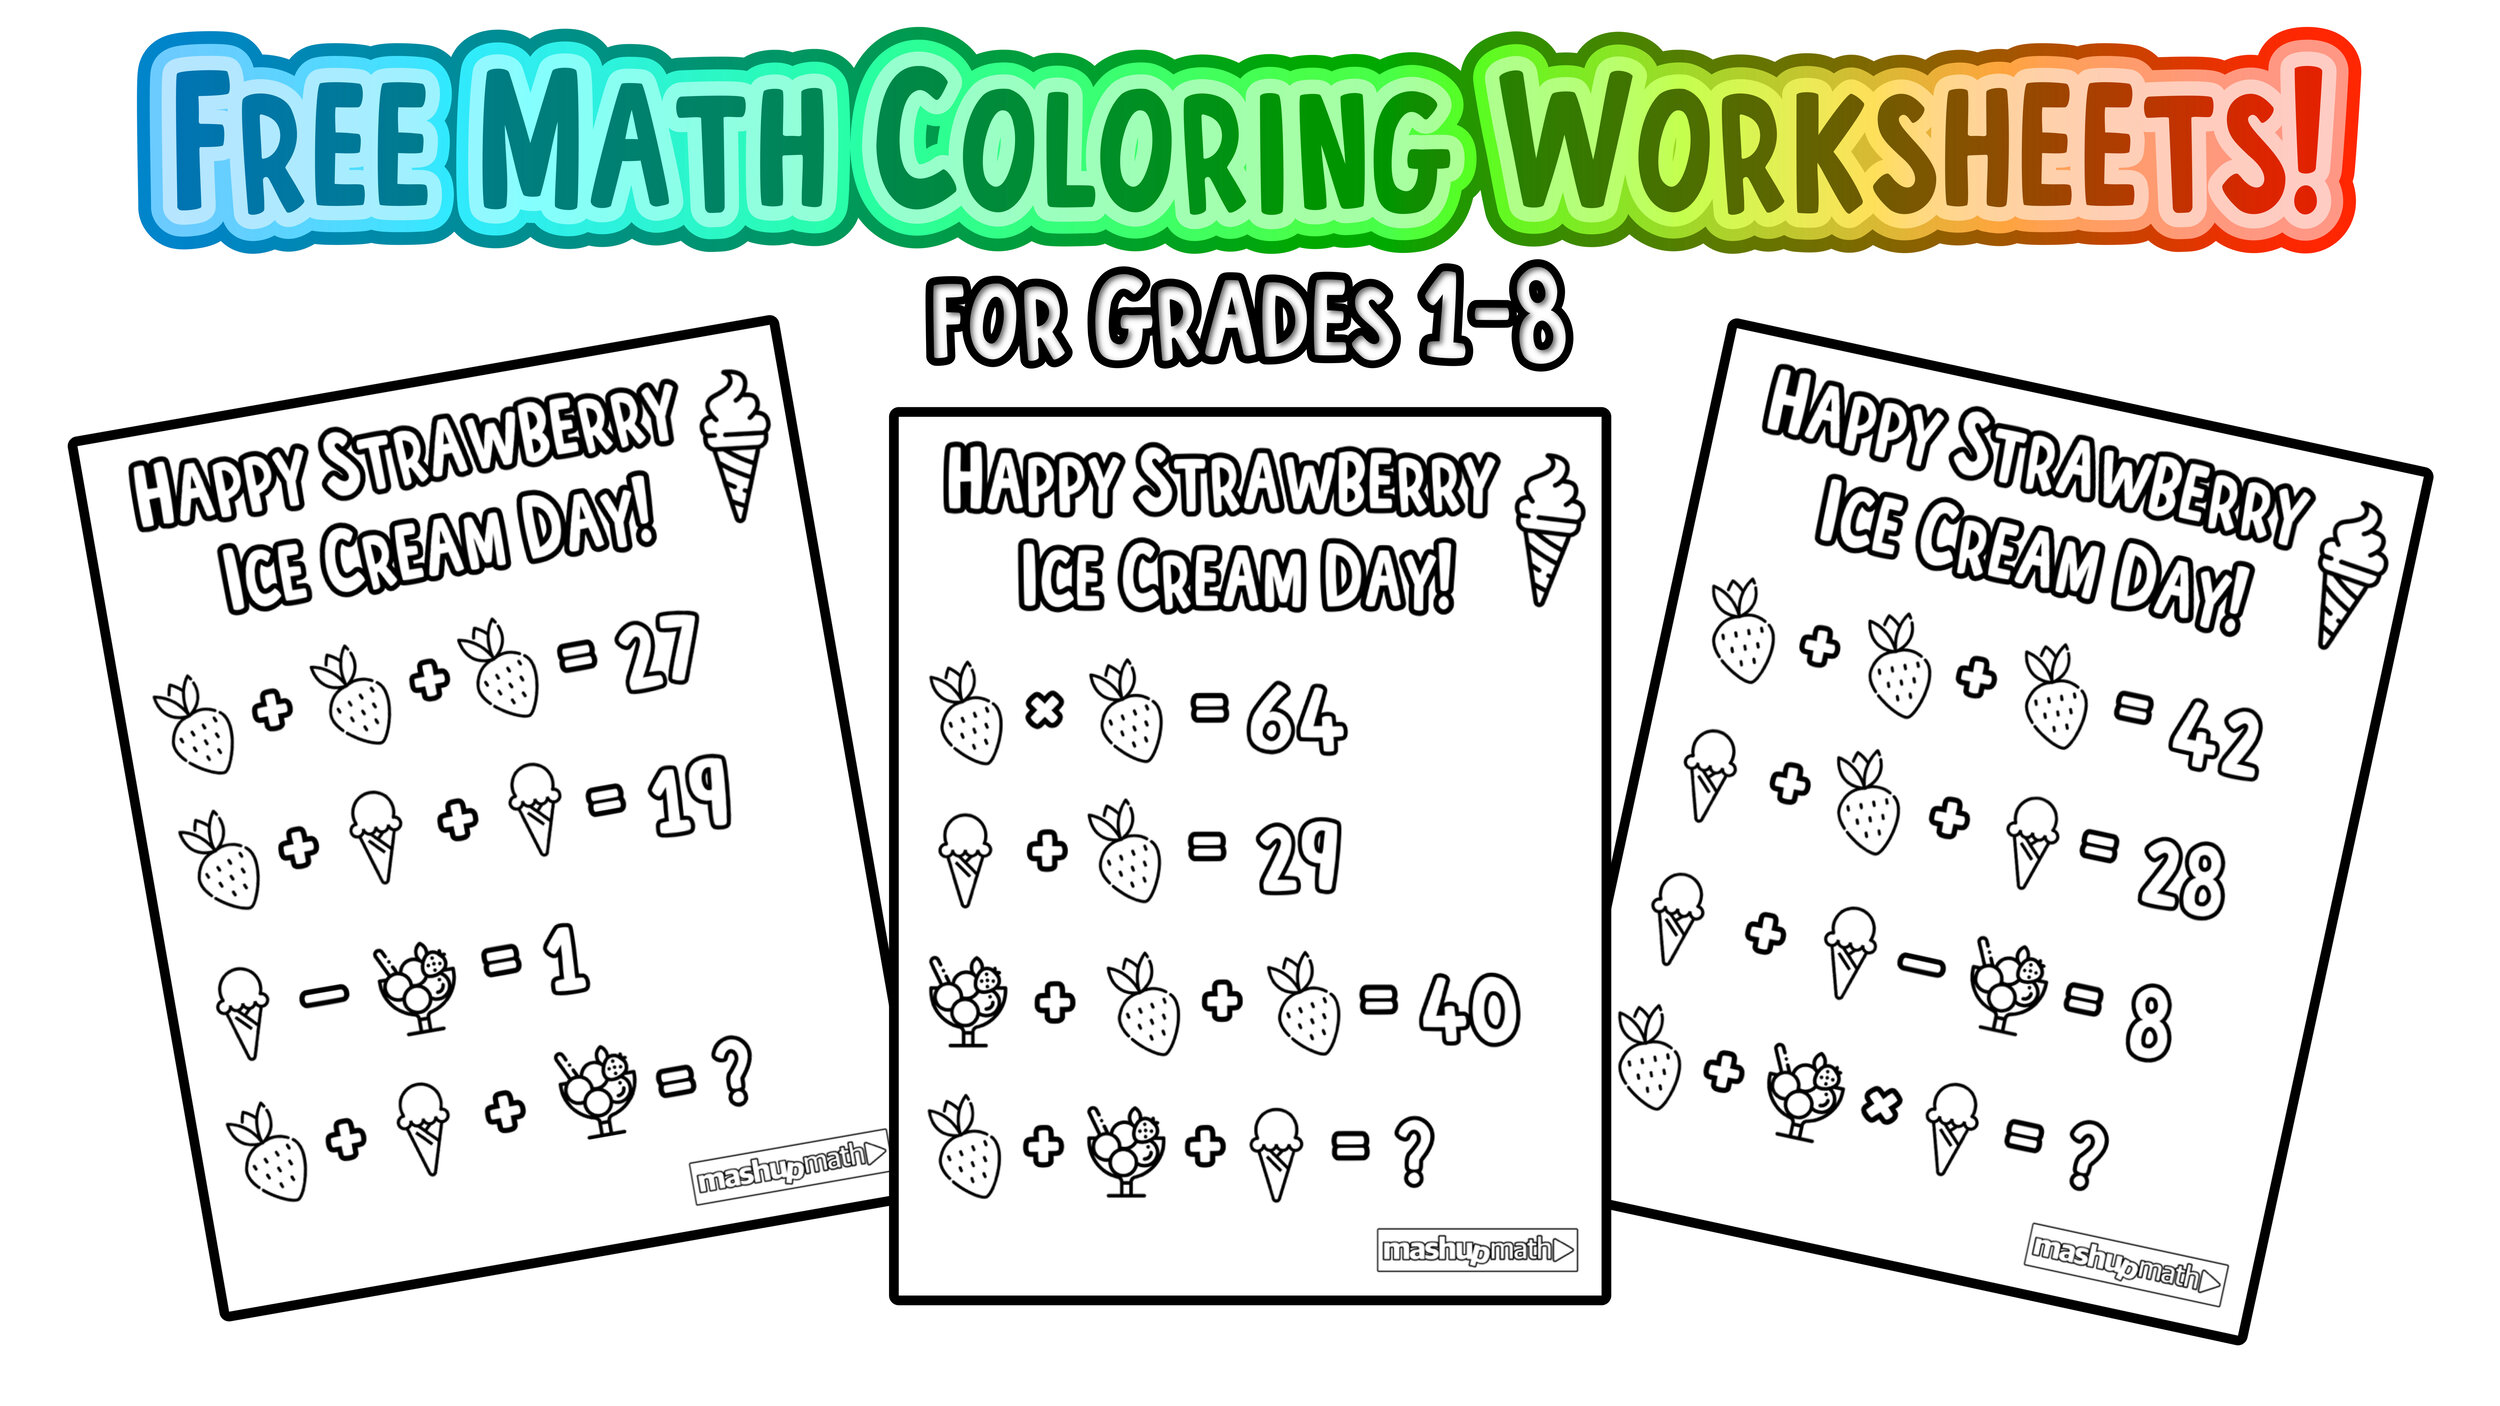 Free Math Coloring Pages for Grades 1-8 — Mashup Math [ 1406 x 2500 Pixel ]